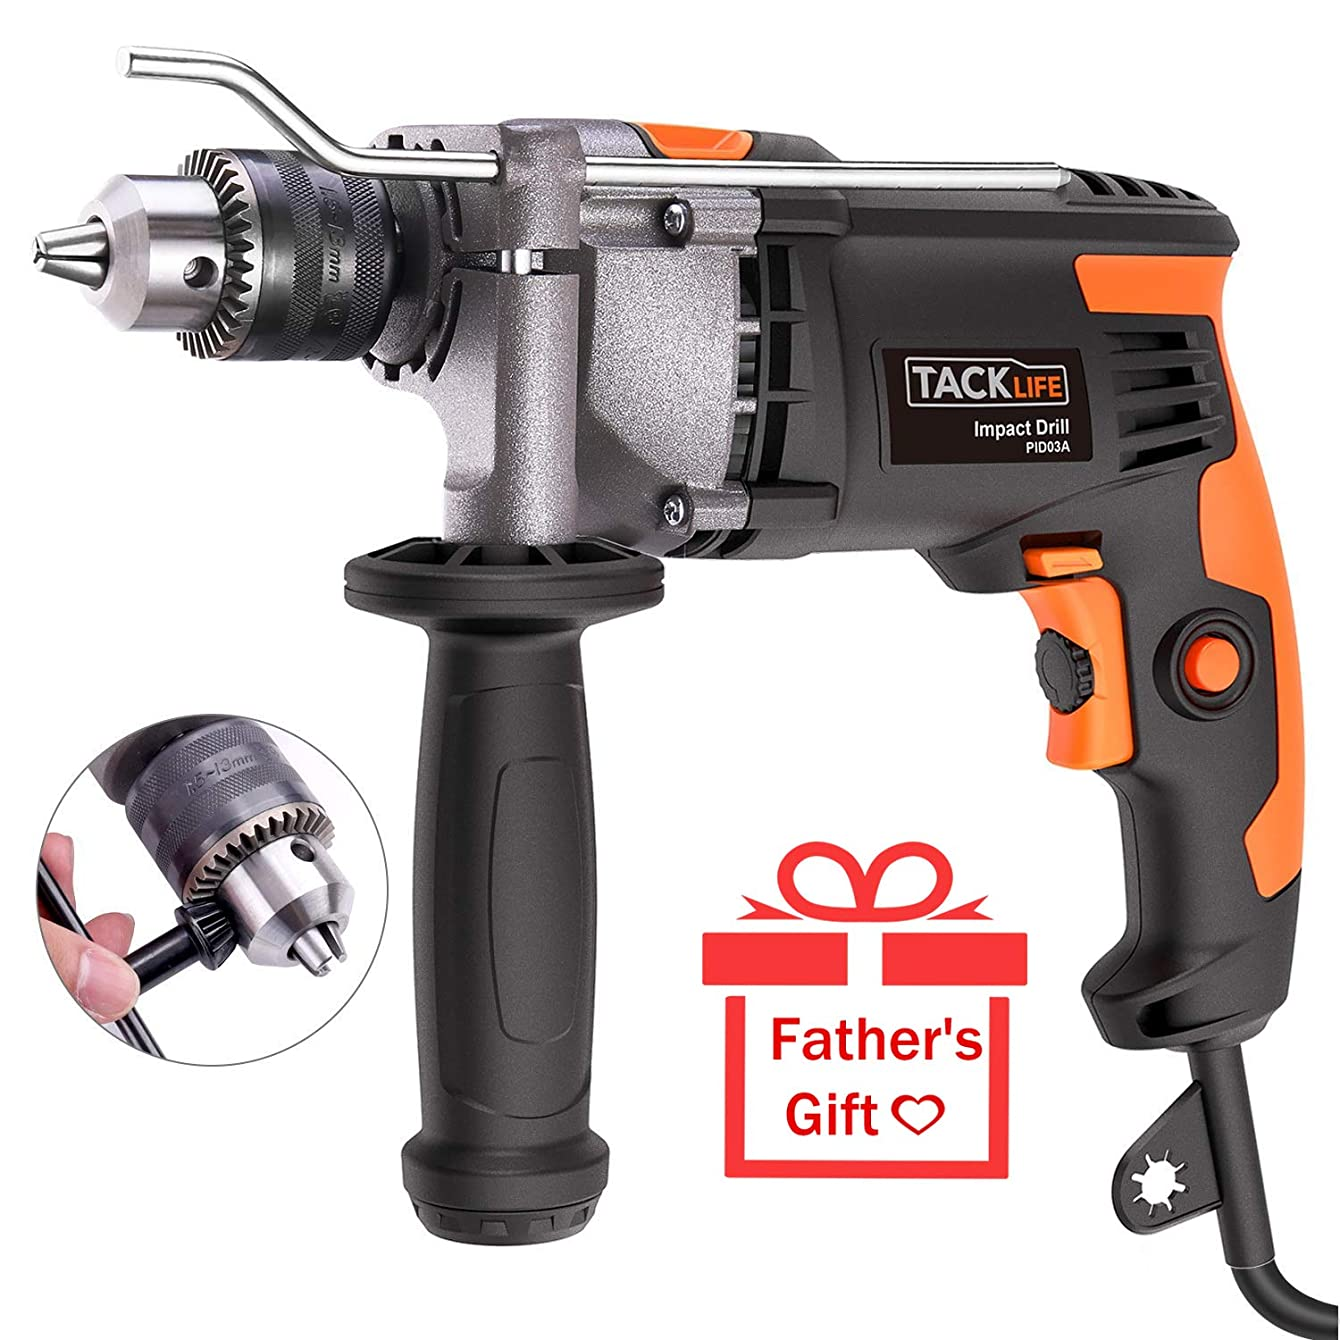 TACKLIFE Upgraded 7.1Amp/3000Rpm 1/2-Inch(13mm) Corded Hammer Drill with Aluminium Alloy Cover, Metal Rotating Handle, Variable Speed Trigger,Rotary Hammer, Ideal Tool for DIY - PID03A